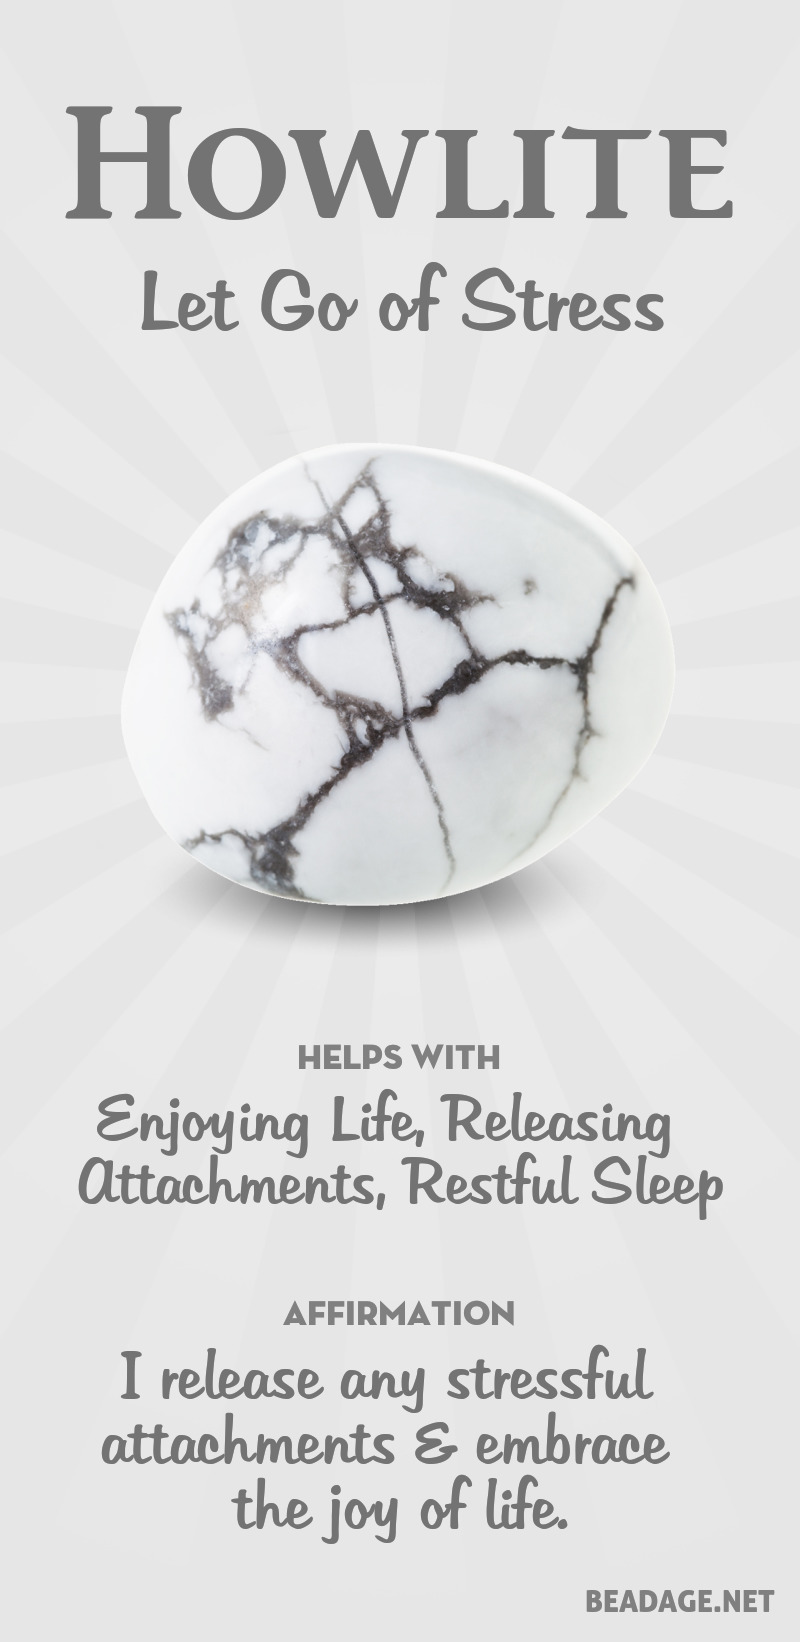 Howlite is calming because it encourages you to